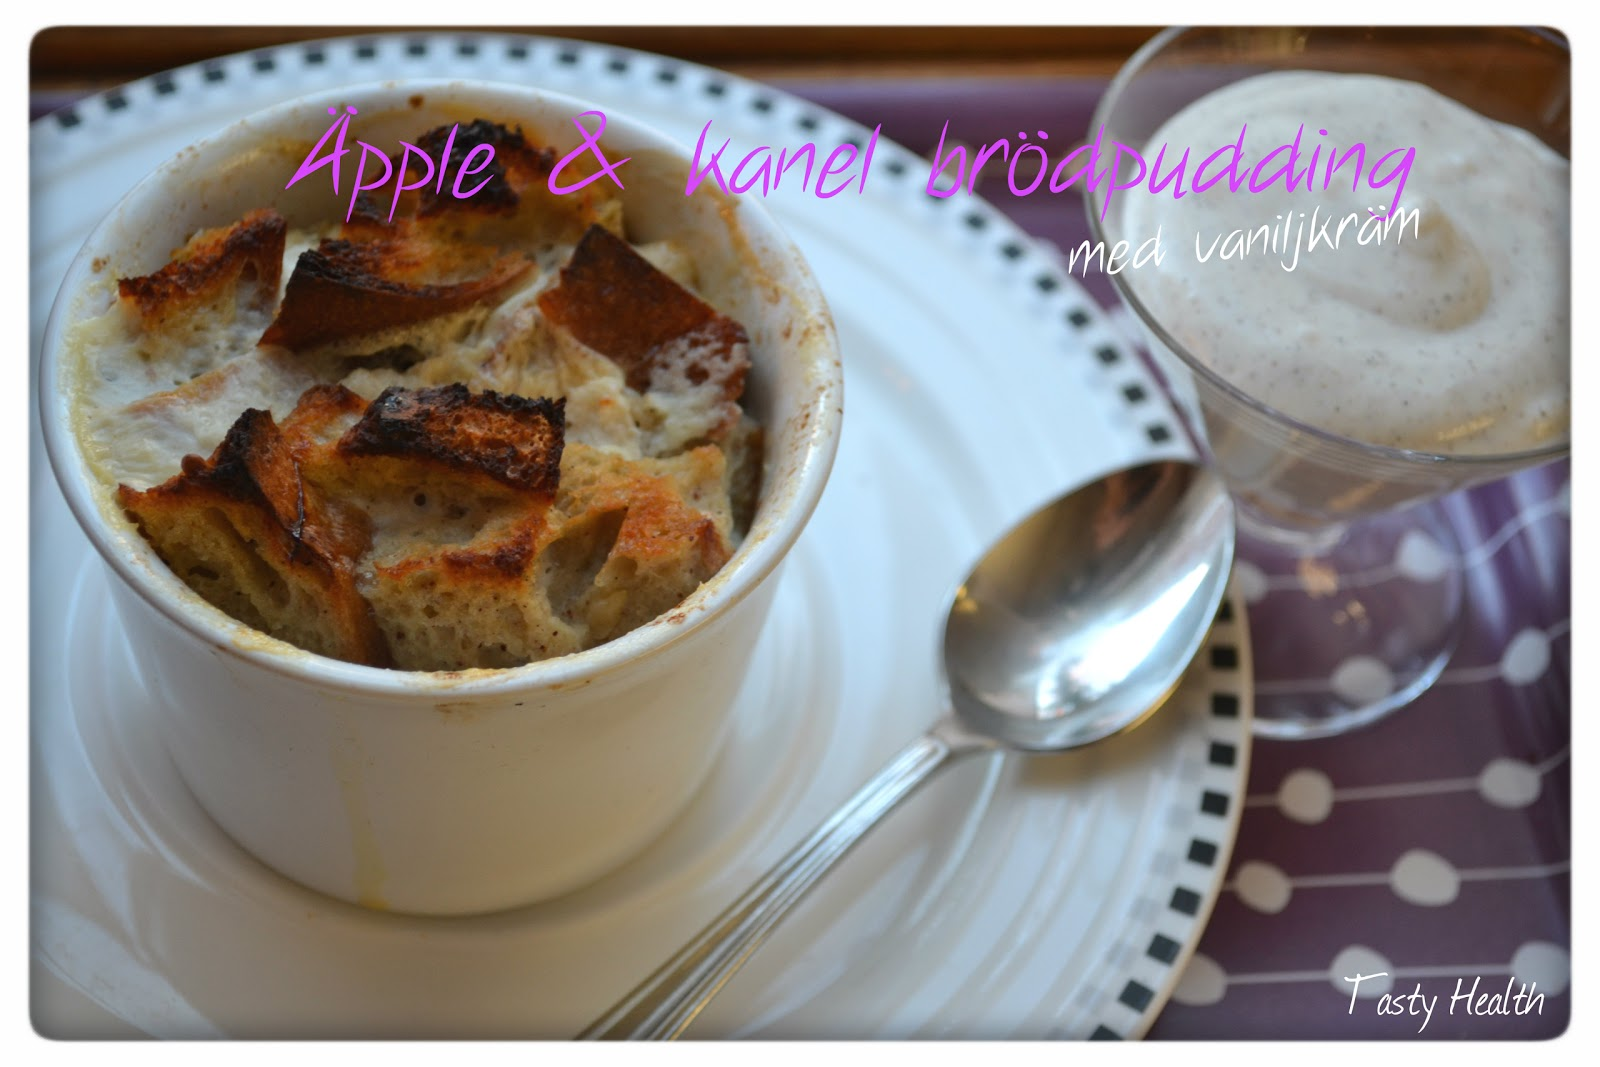 tasty health äpple kanel brödpudding med vaniljkräm